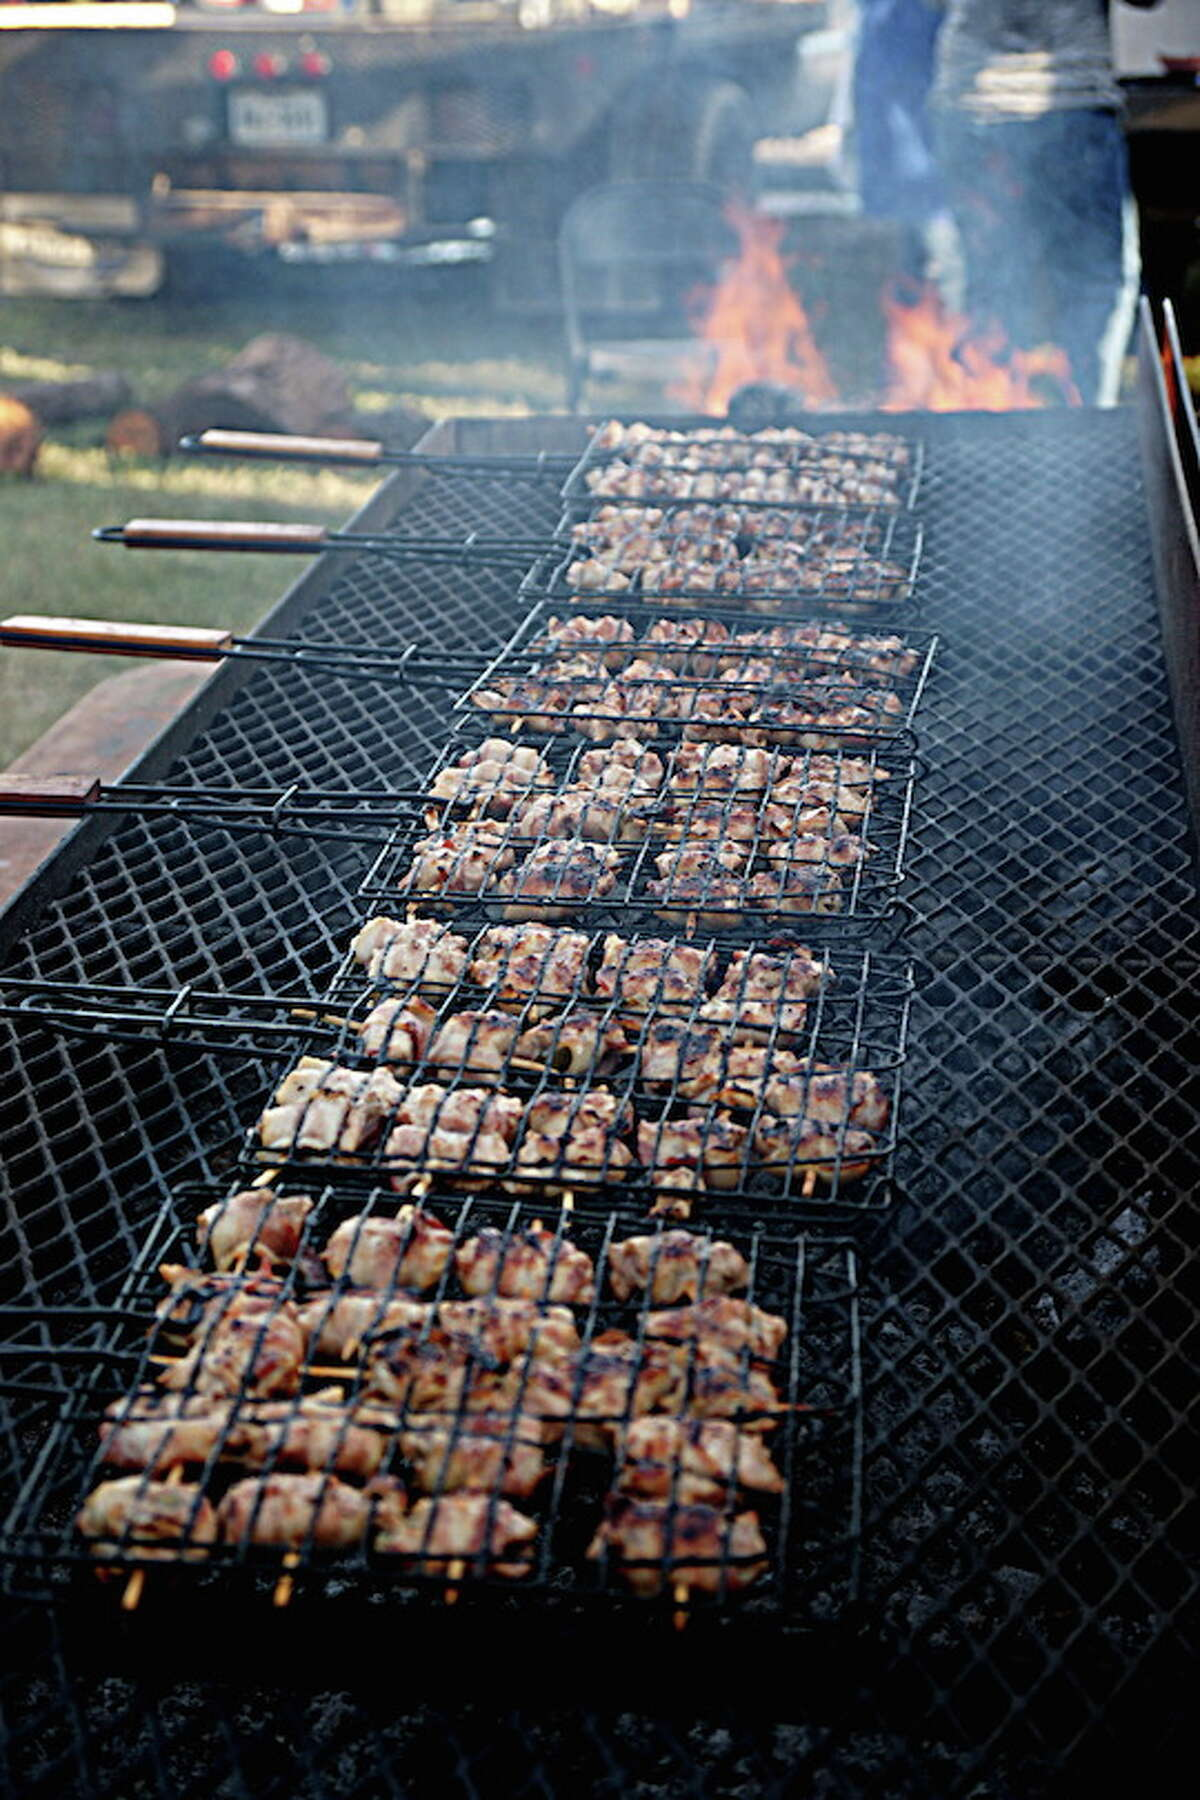 Bacon wrapped quail breasts made by the cook team Grill Billies for the Wild Game Dinner held at Kendall County Fairgrounds on Nov. 7.